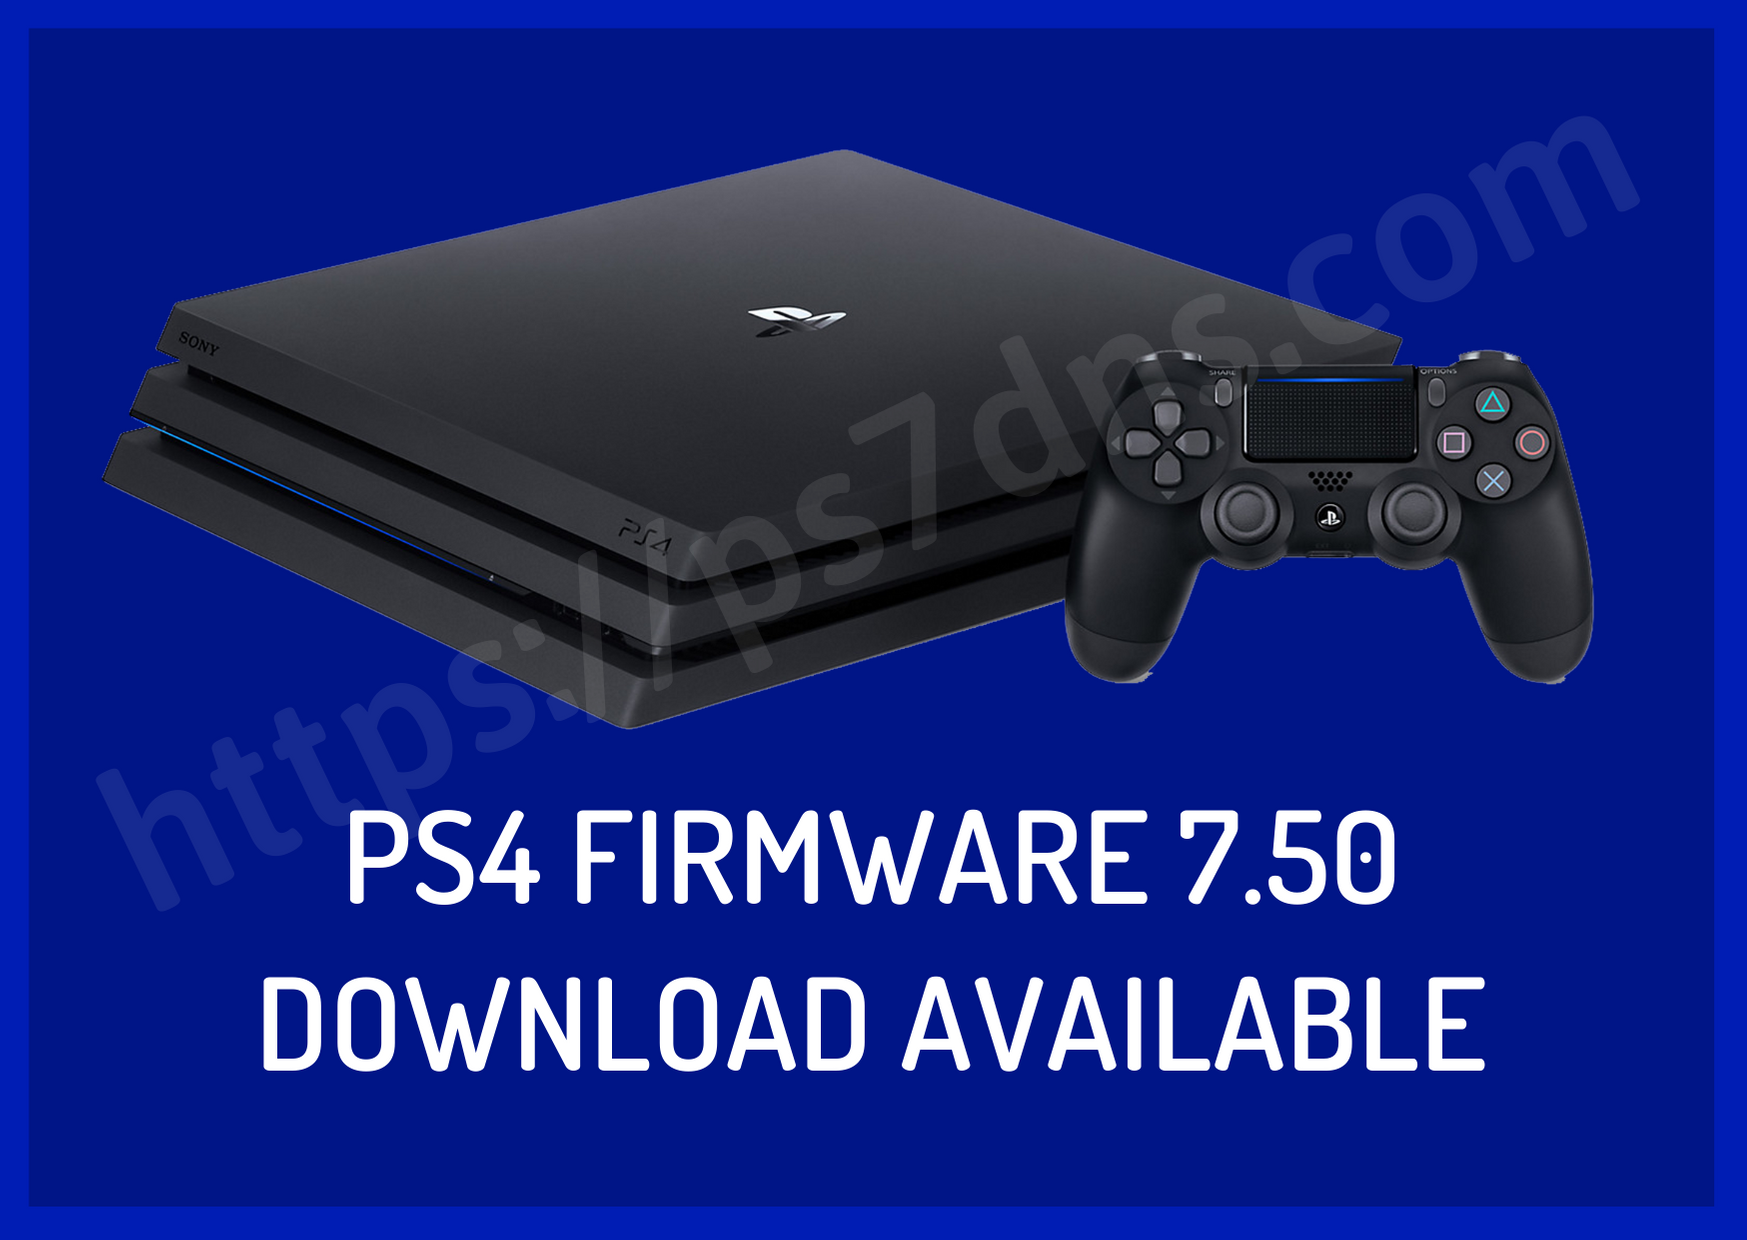 PS4 Firmware 7.50 Download Available